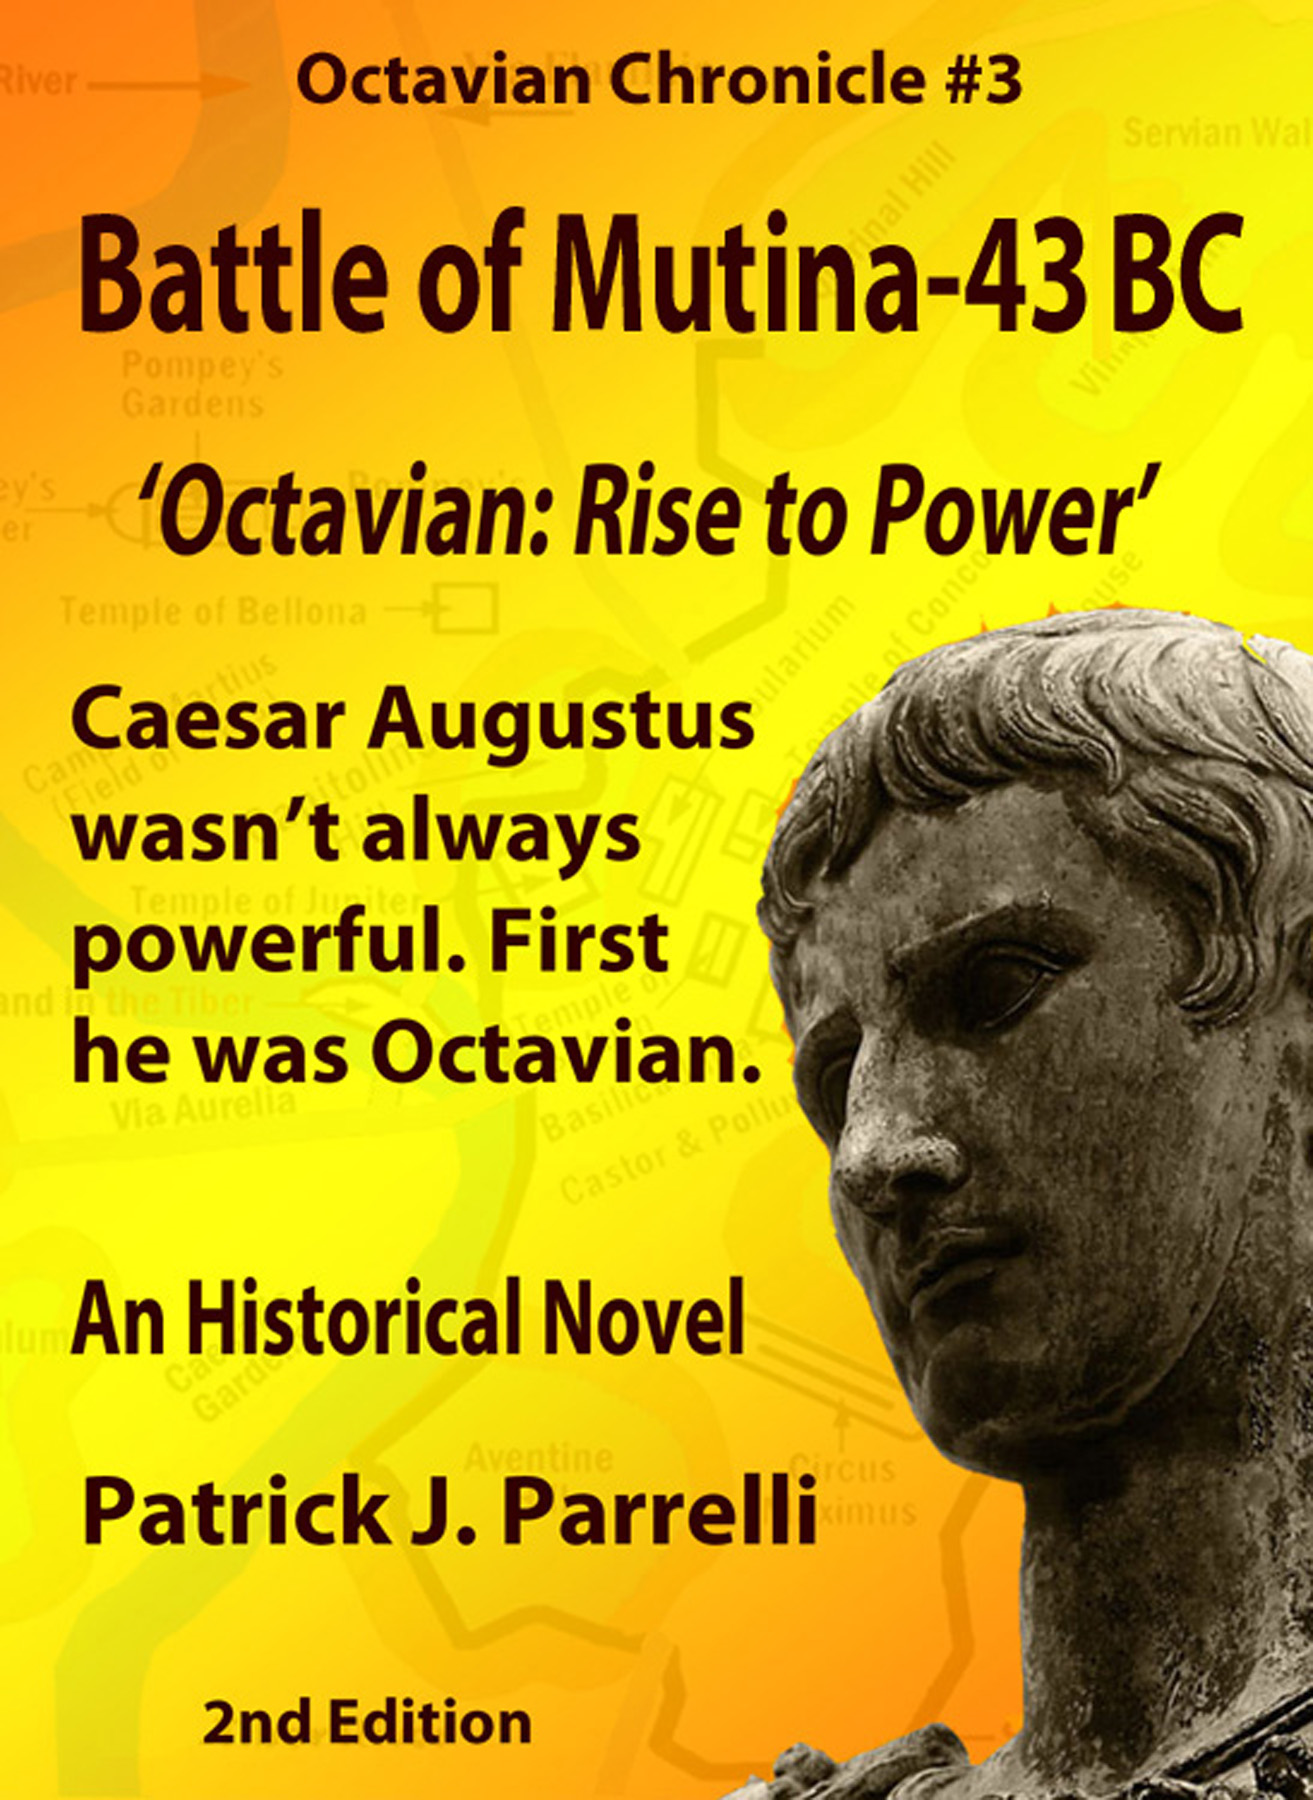 #3 Battle of Mutina - 43 BC